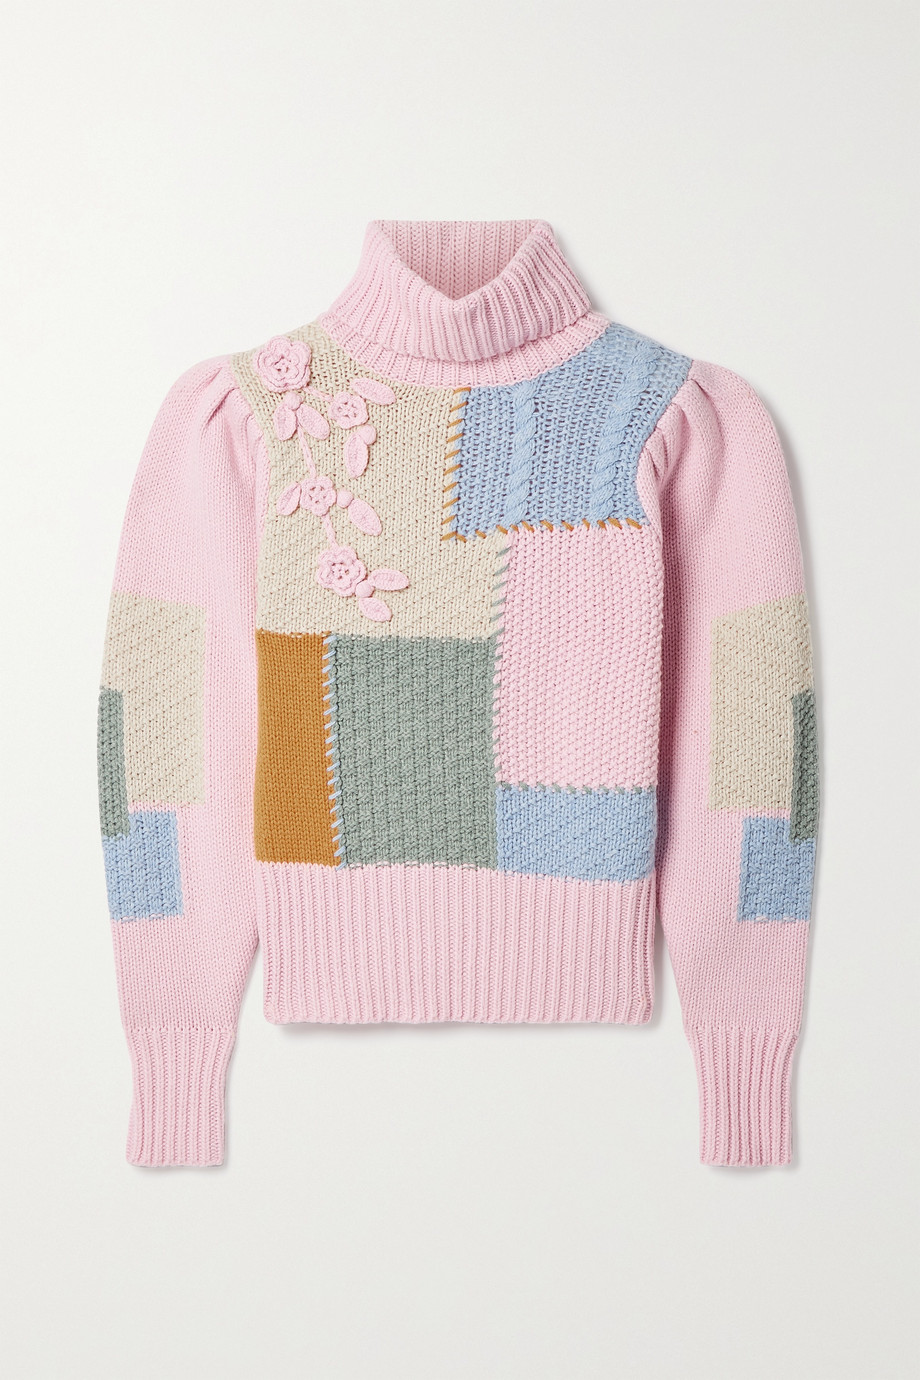 LoveShackFancy Allan appliquéd patchwork knitted turtleneck sweater